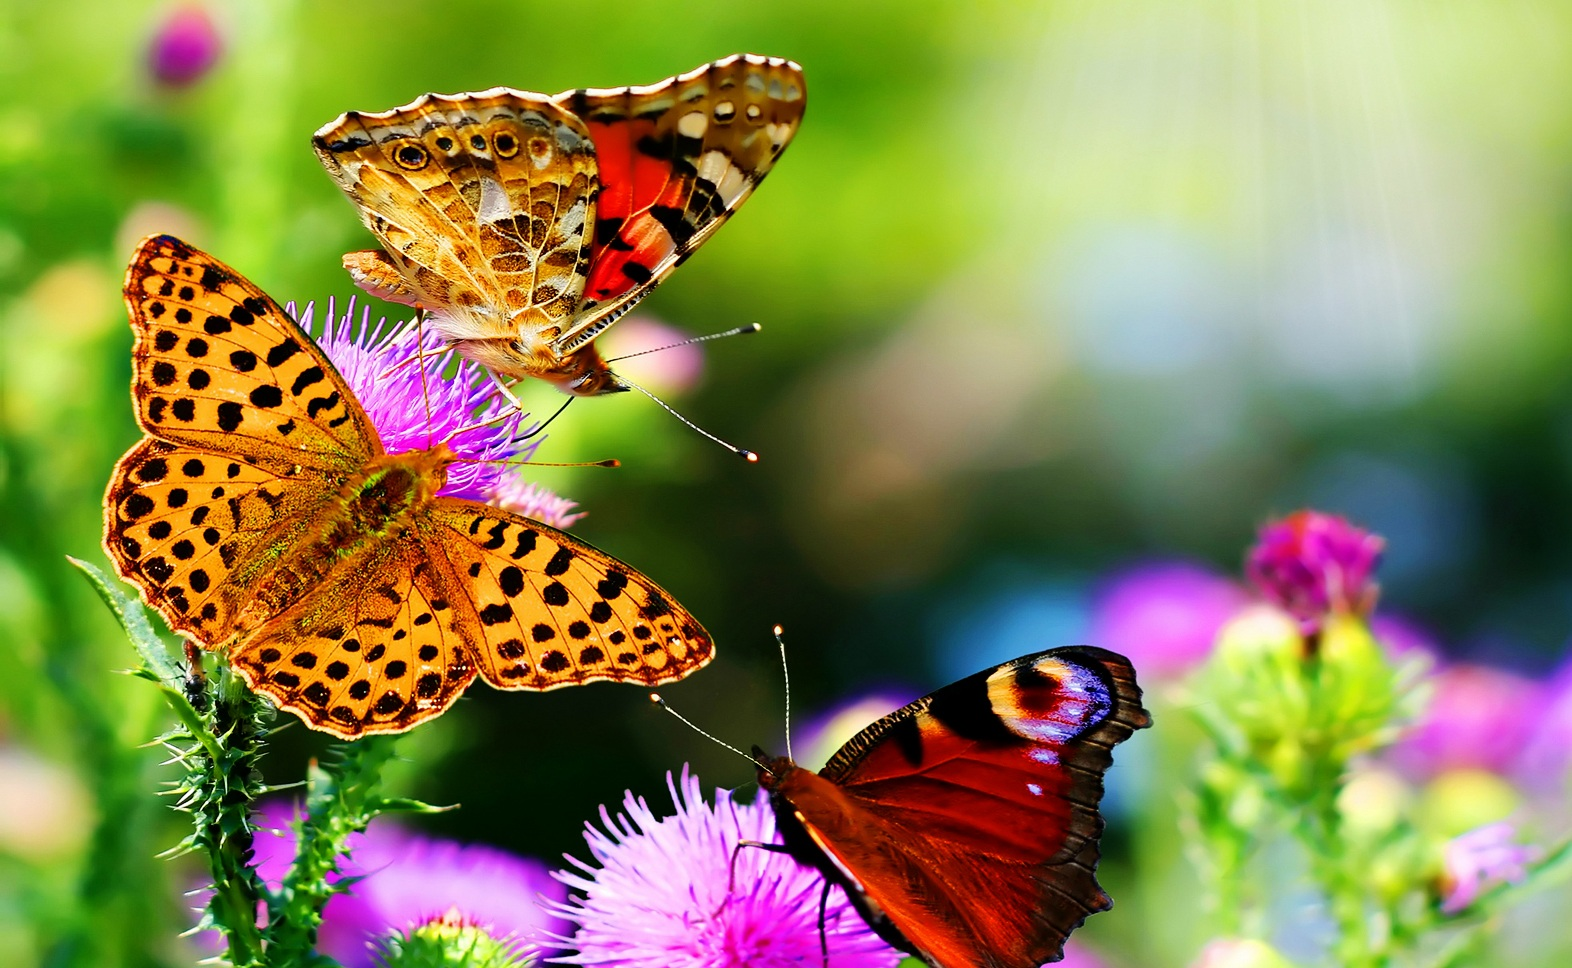 Flowers butterfly natural beauty desktop wallpapers | NATURE ...